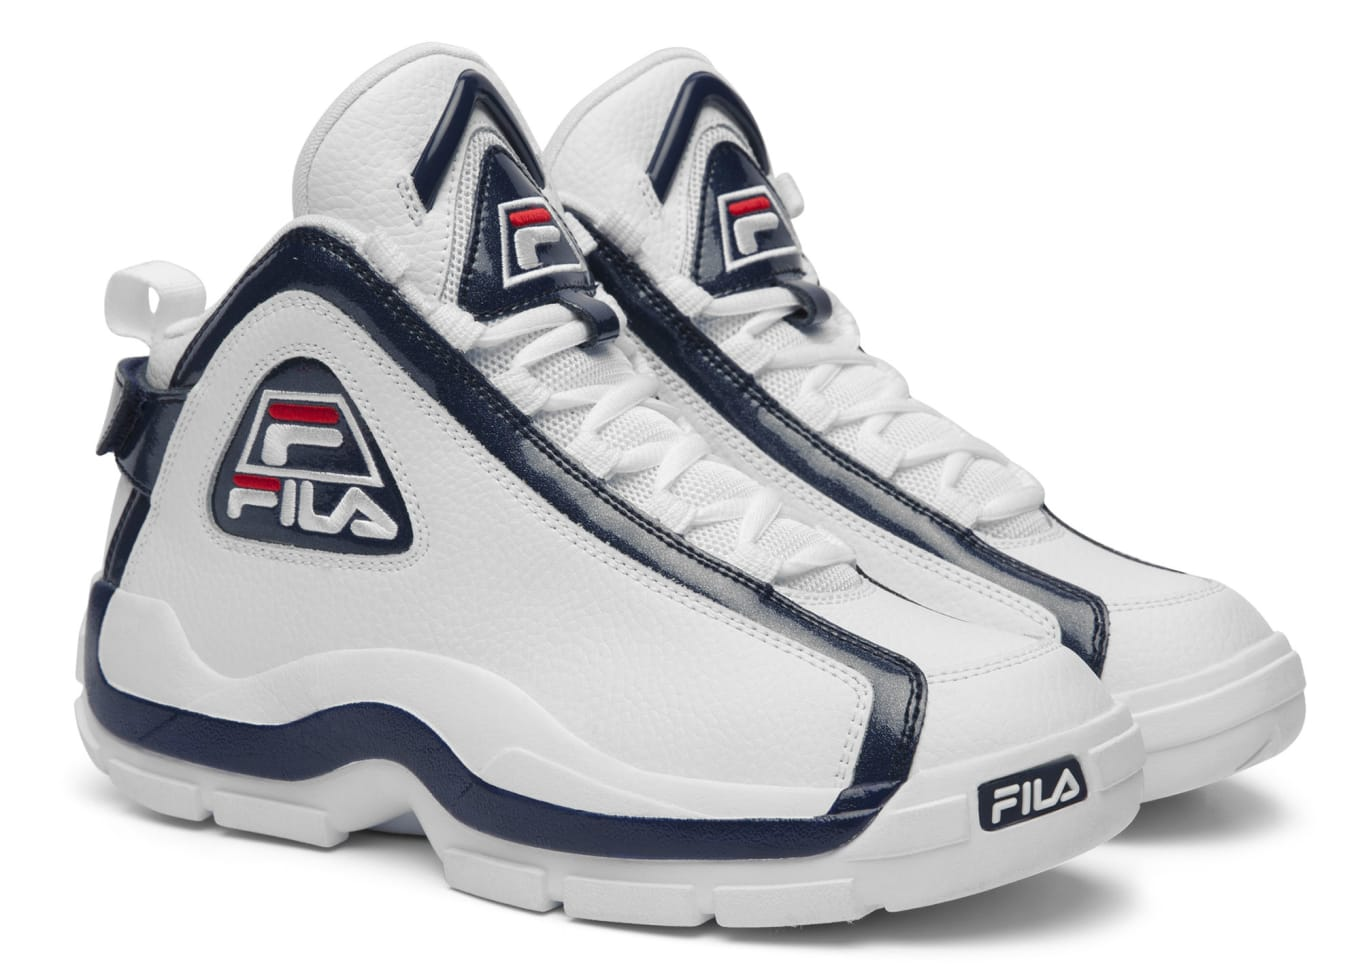 7ca98d7d782 Walter's x FILA Grant Hill 2 96 OG | Sole Collector